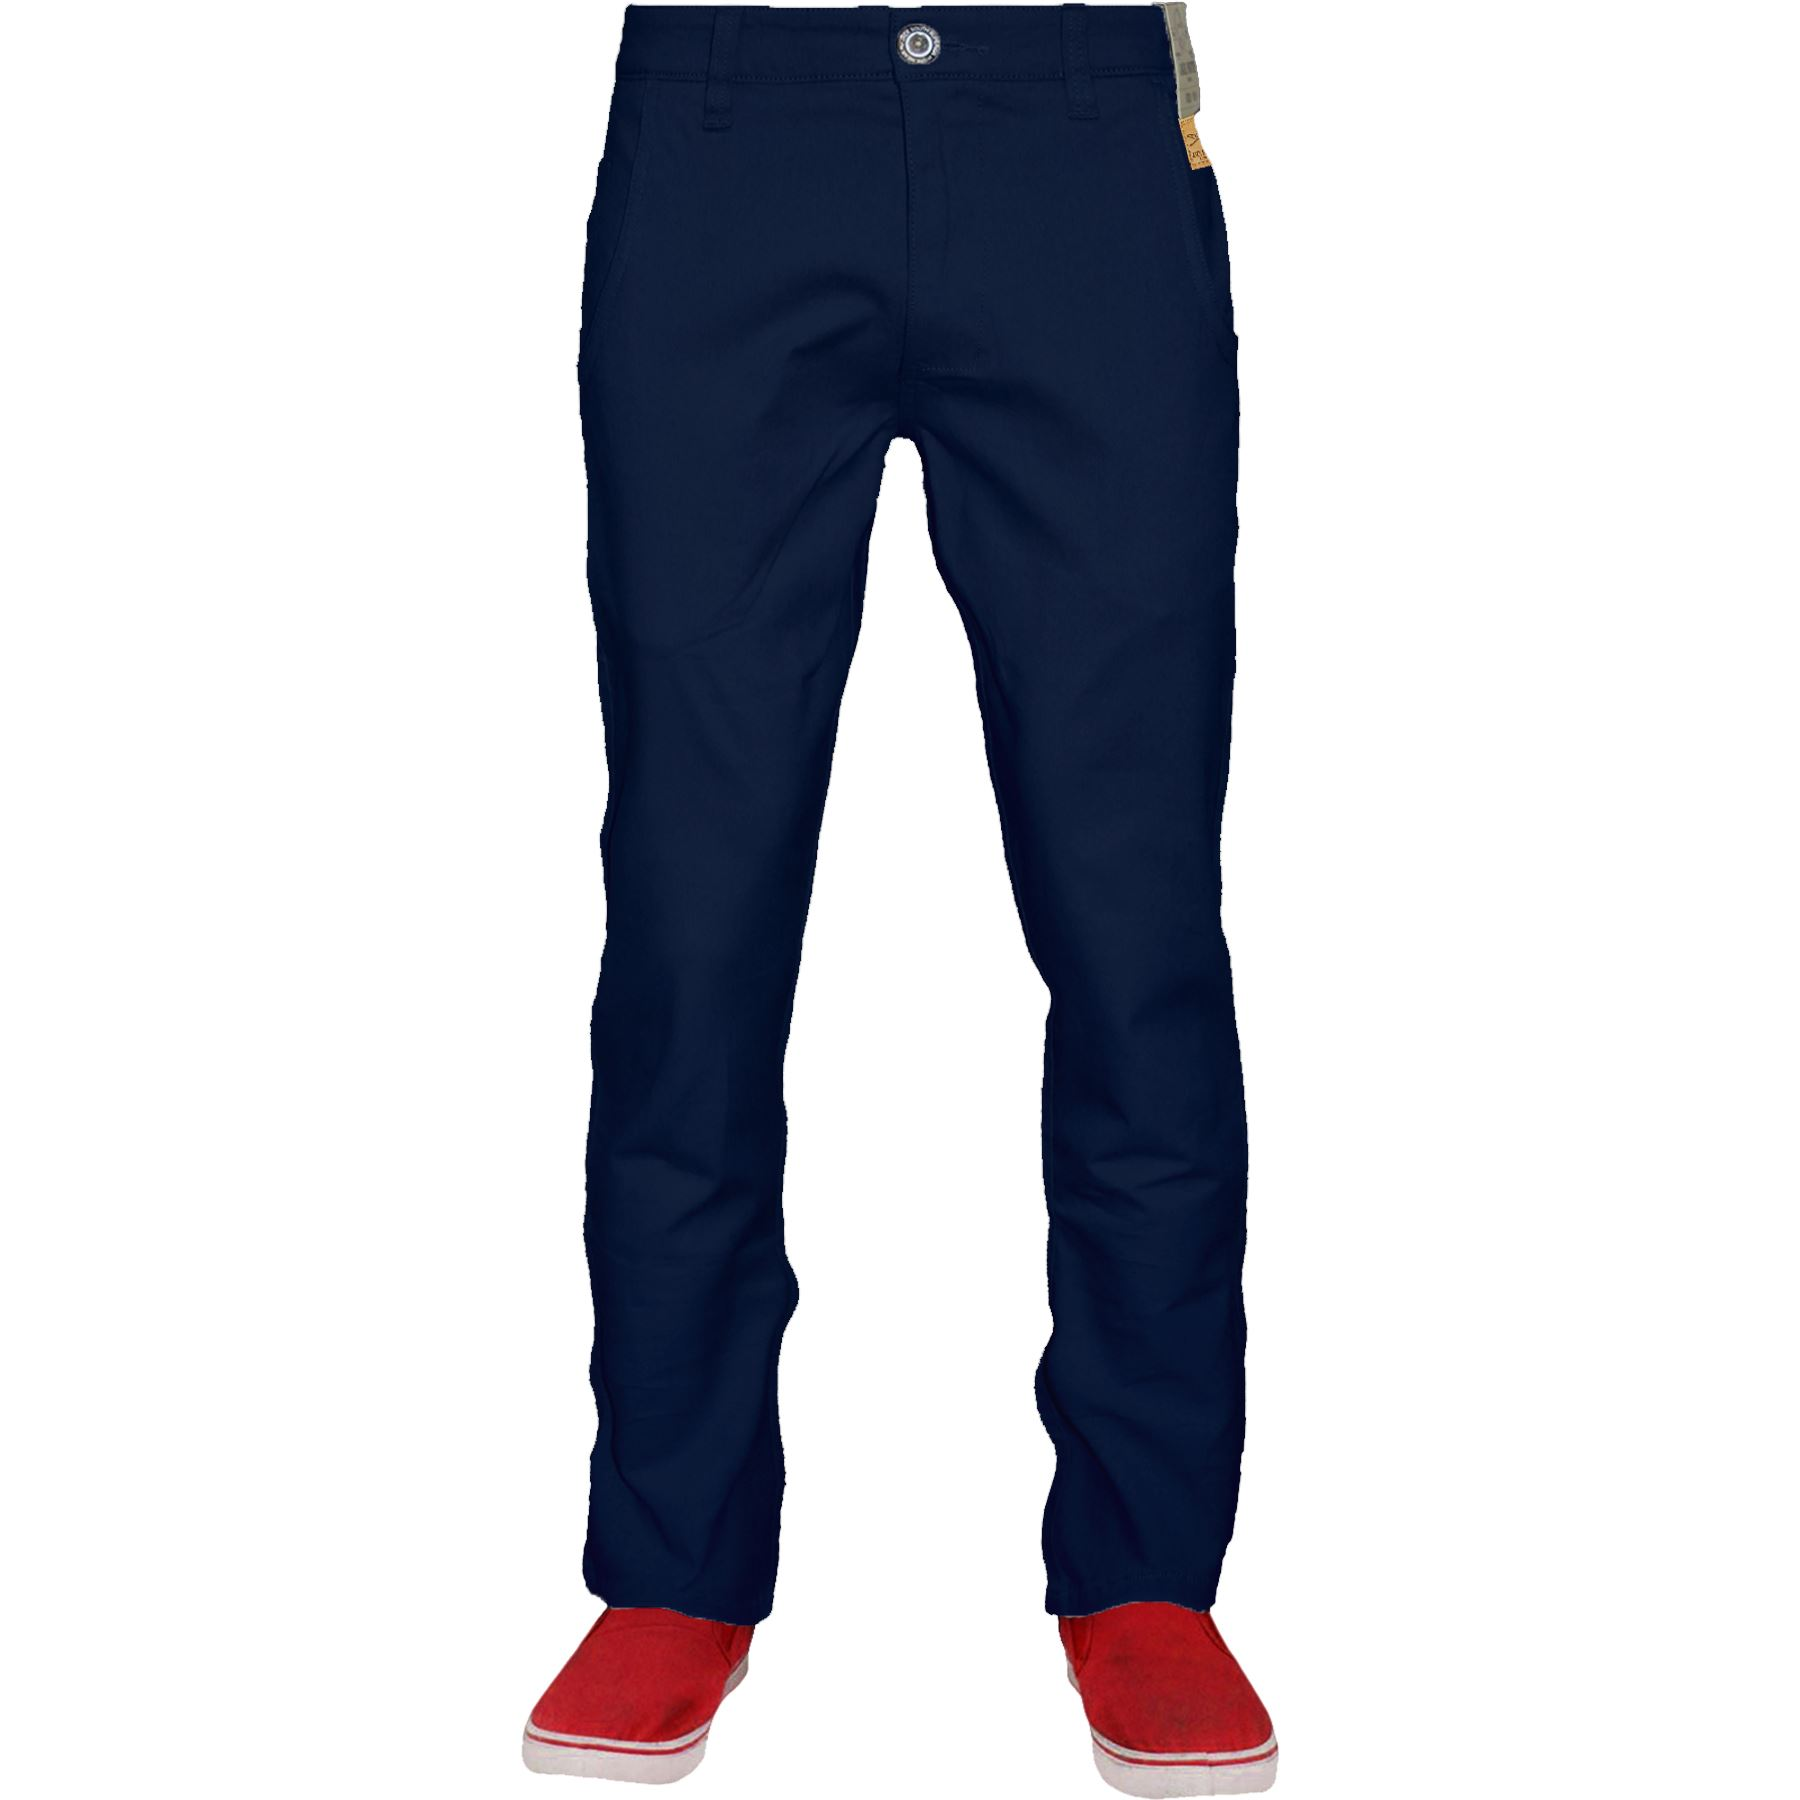 Mens-Stretch-Chino-Jacksouth-Designer-Regular-Fit-Straight-Leg-Trousers-Cotton thumbnail 14